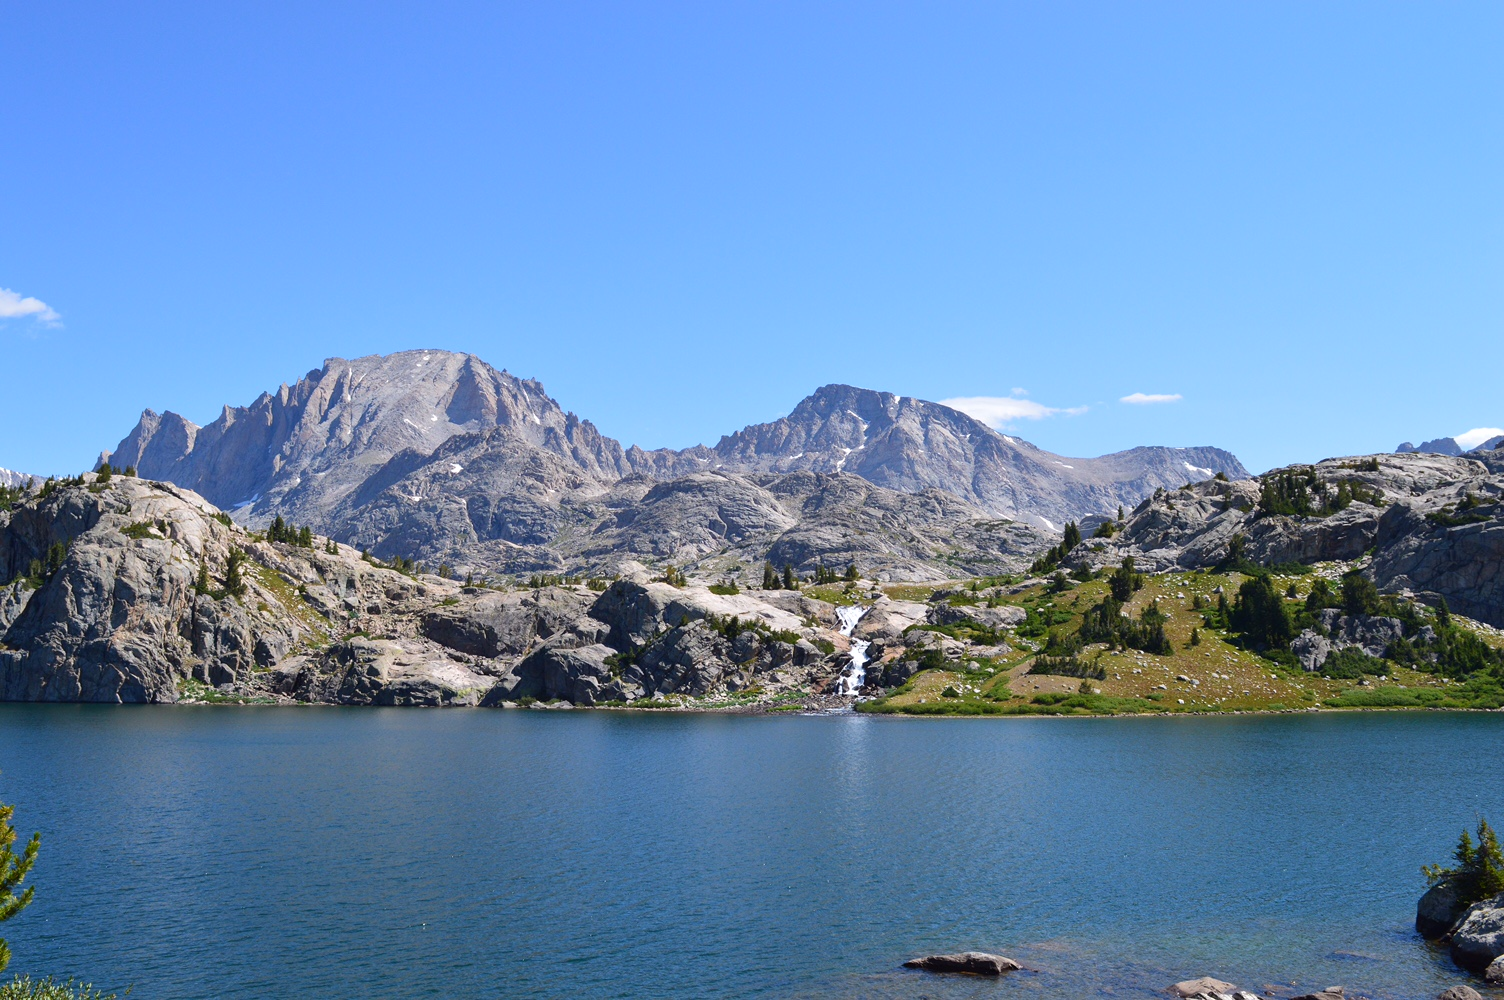 Beautiful Mountain and Lake taken from the Pinedale Ranger District Area.